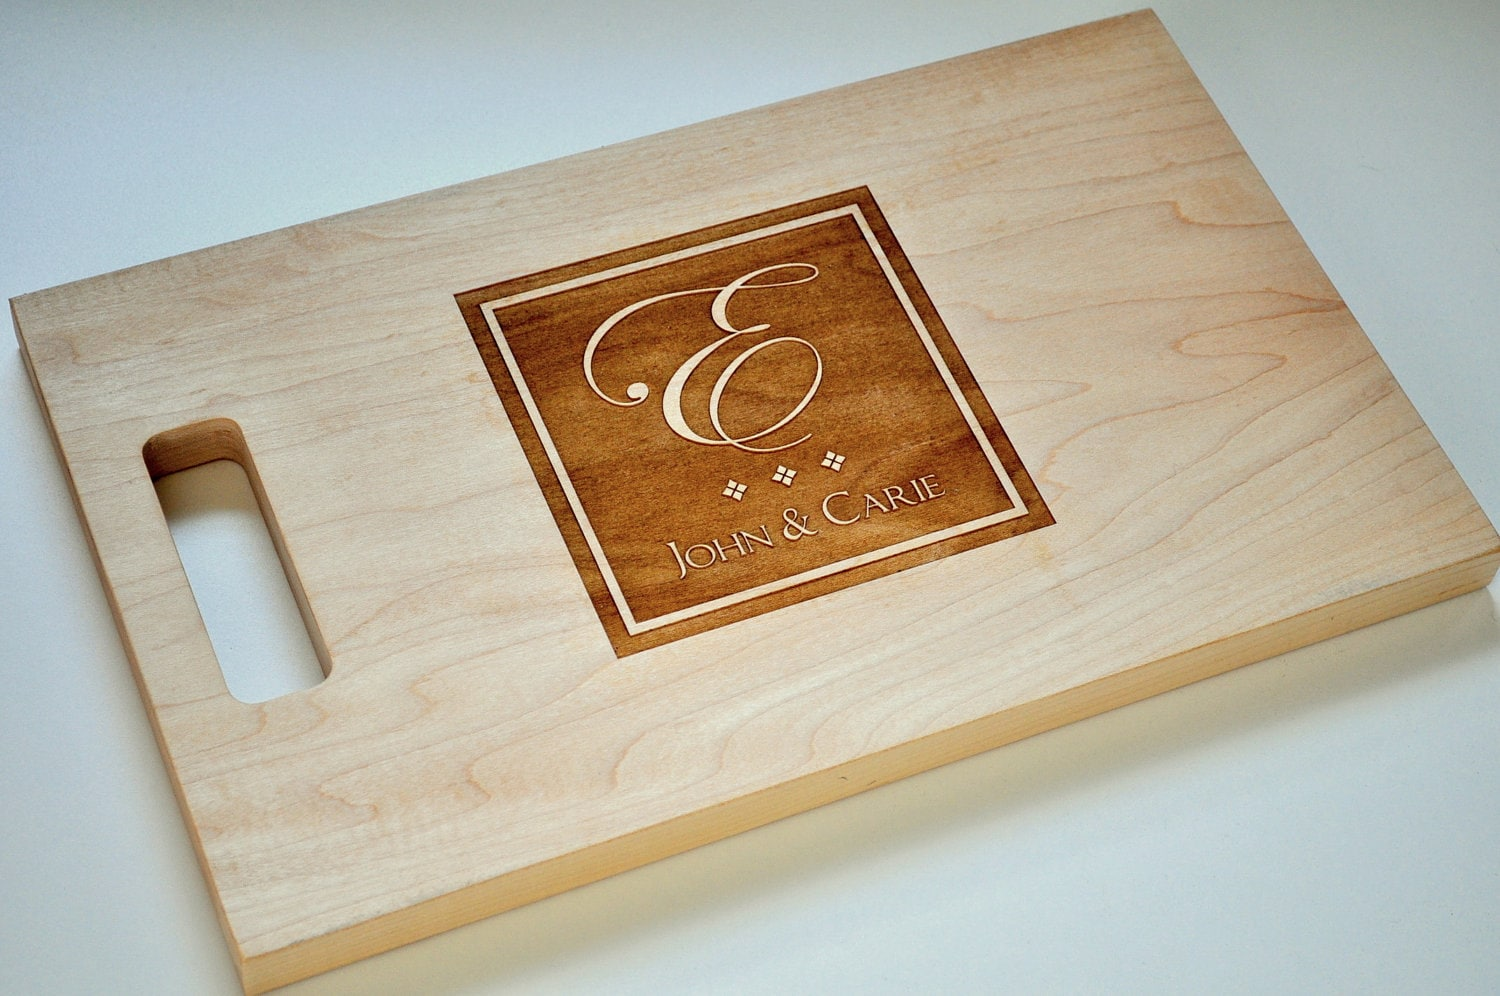 Personalized Cutting Board Laser Engraved Wood Cutting Board